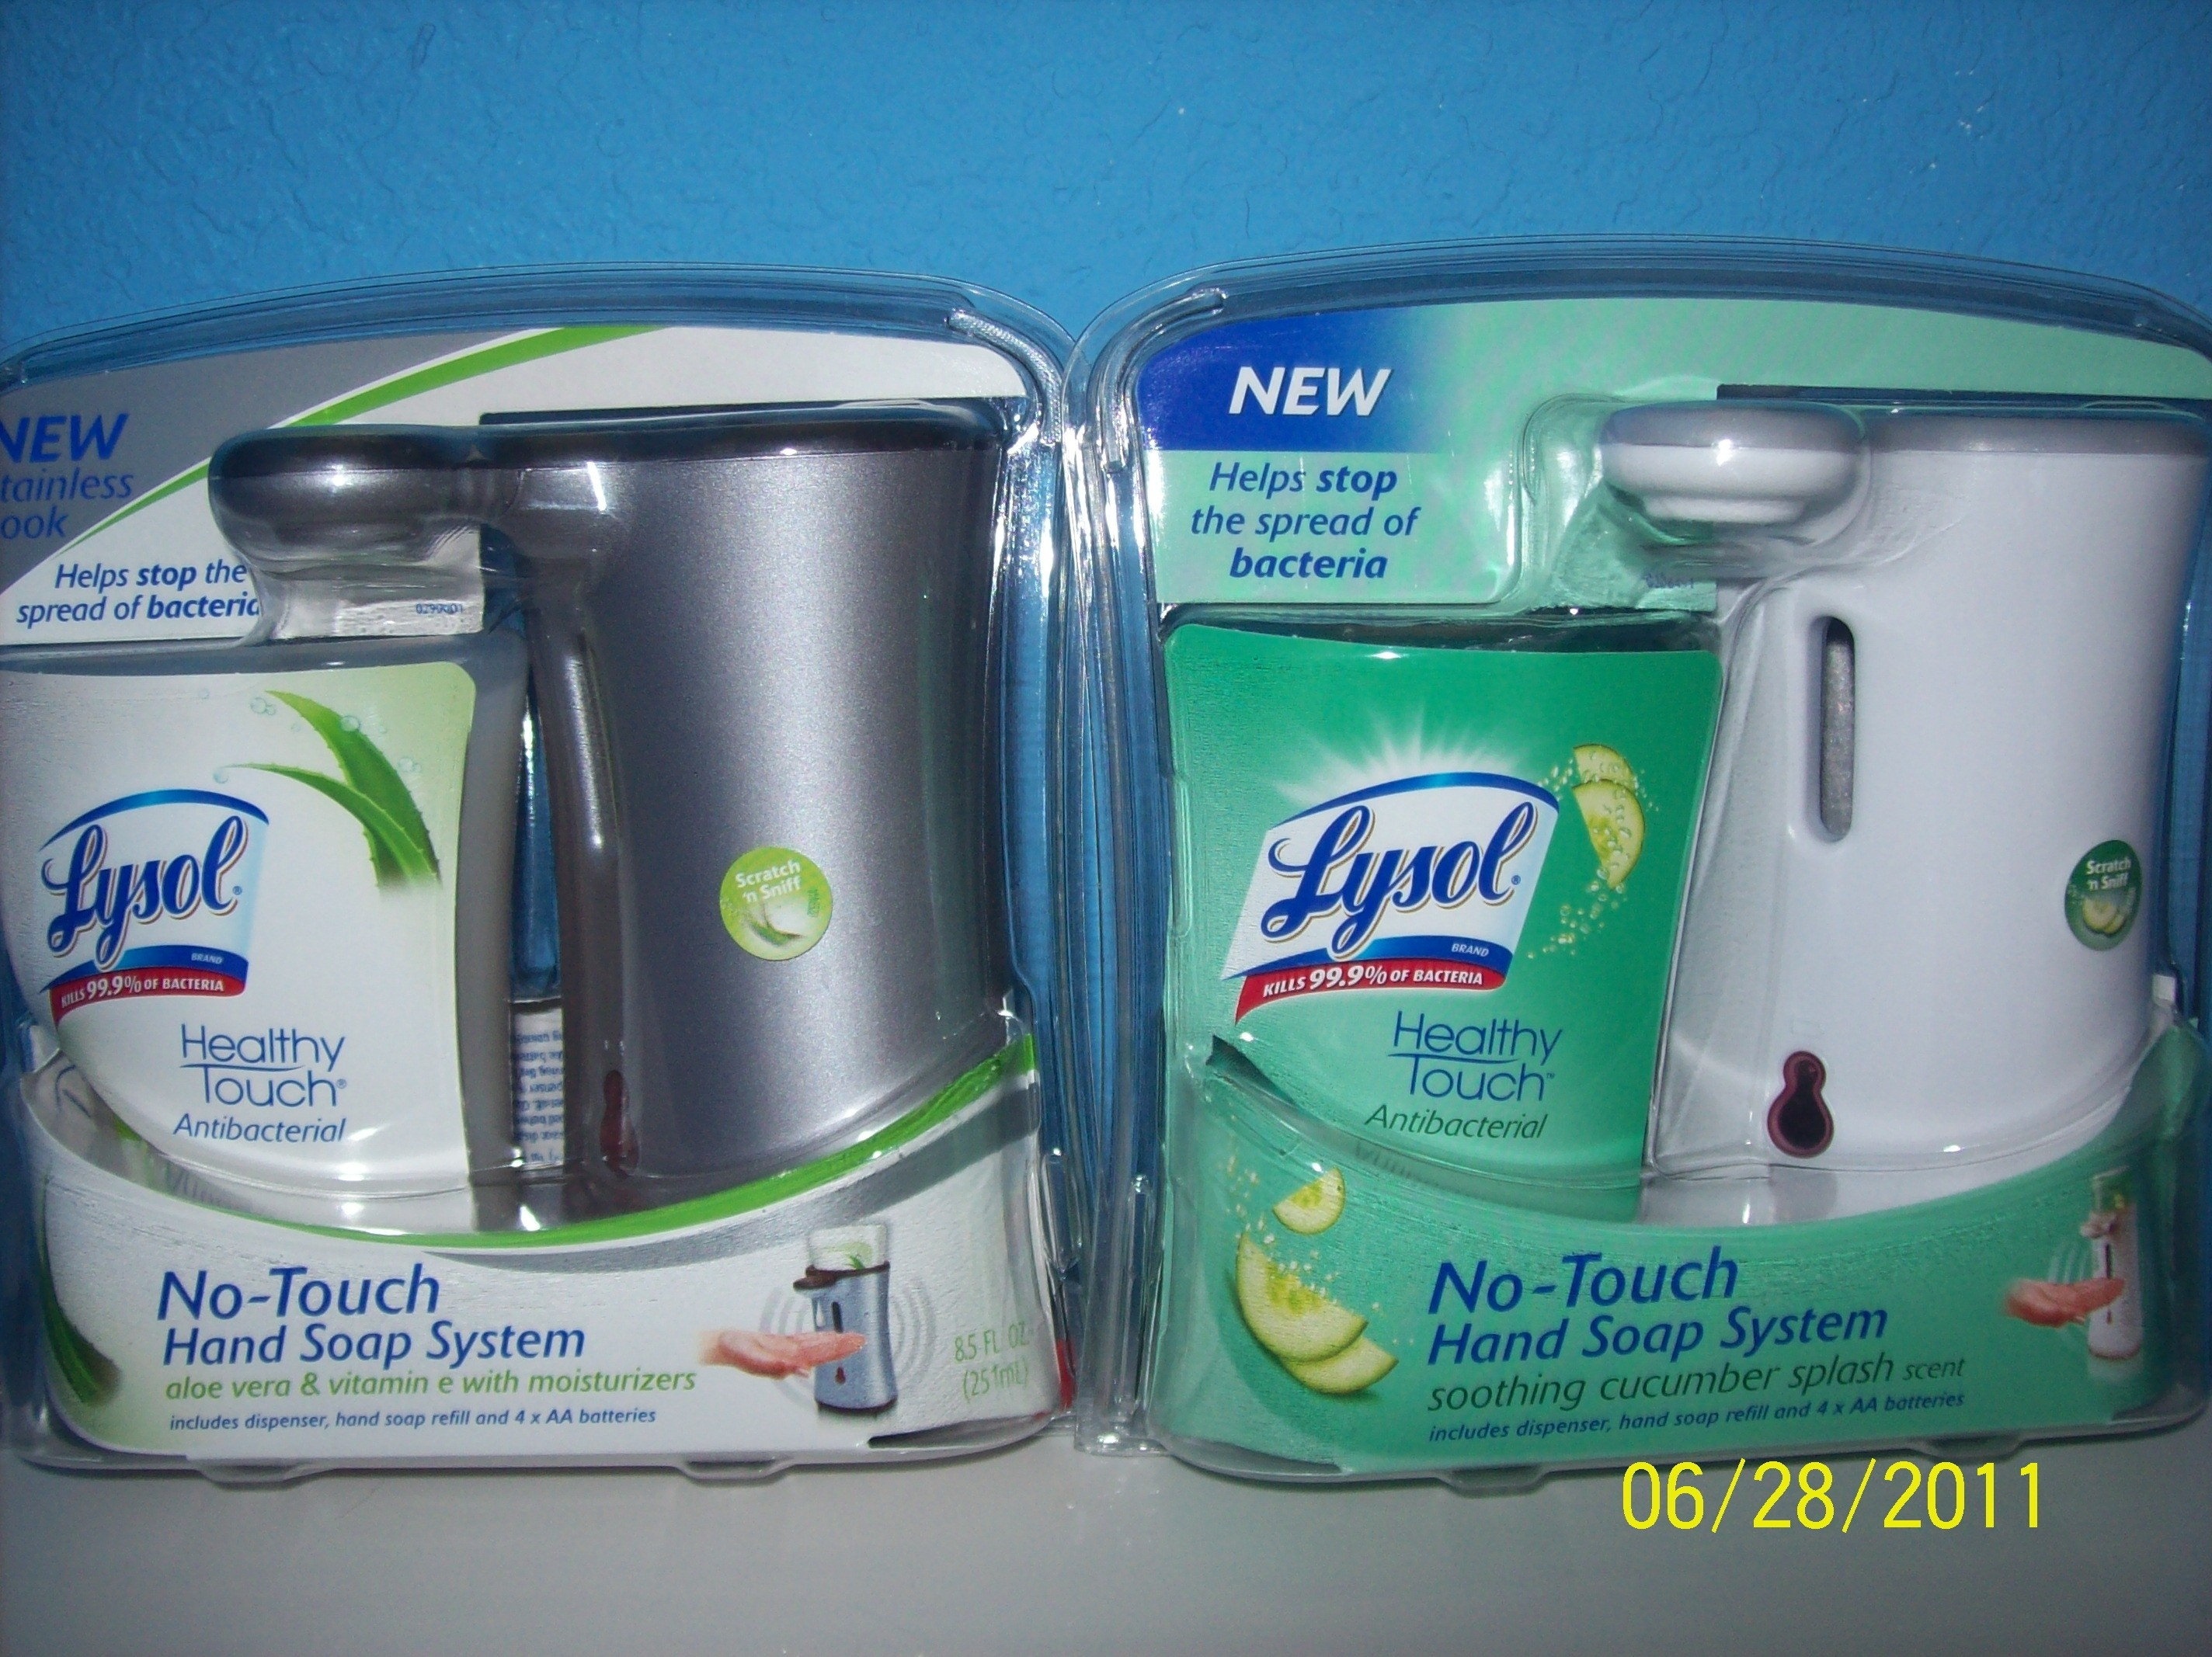 Dollar General Lysol No-Touch Hand Soap $2.00 - The Krazy Coupon Lady - Lysol Hands Free Soap Dispenser Printable Coupon